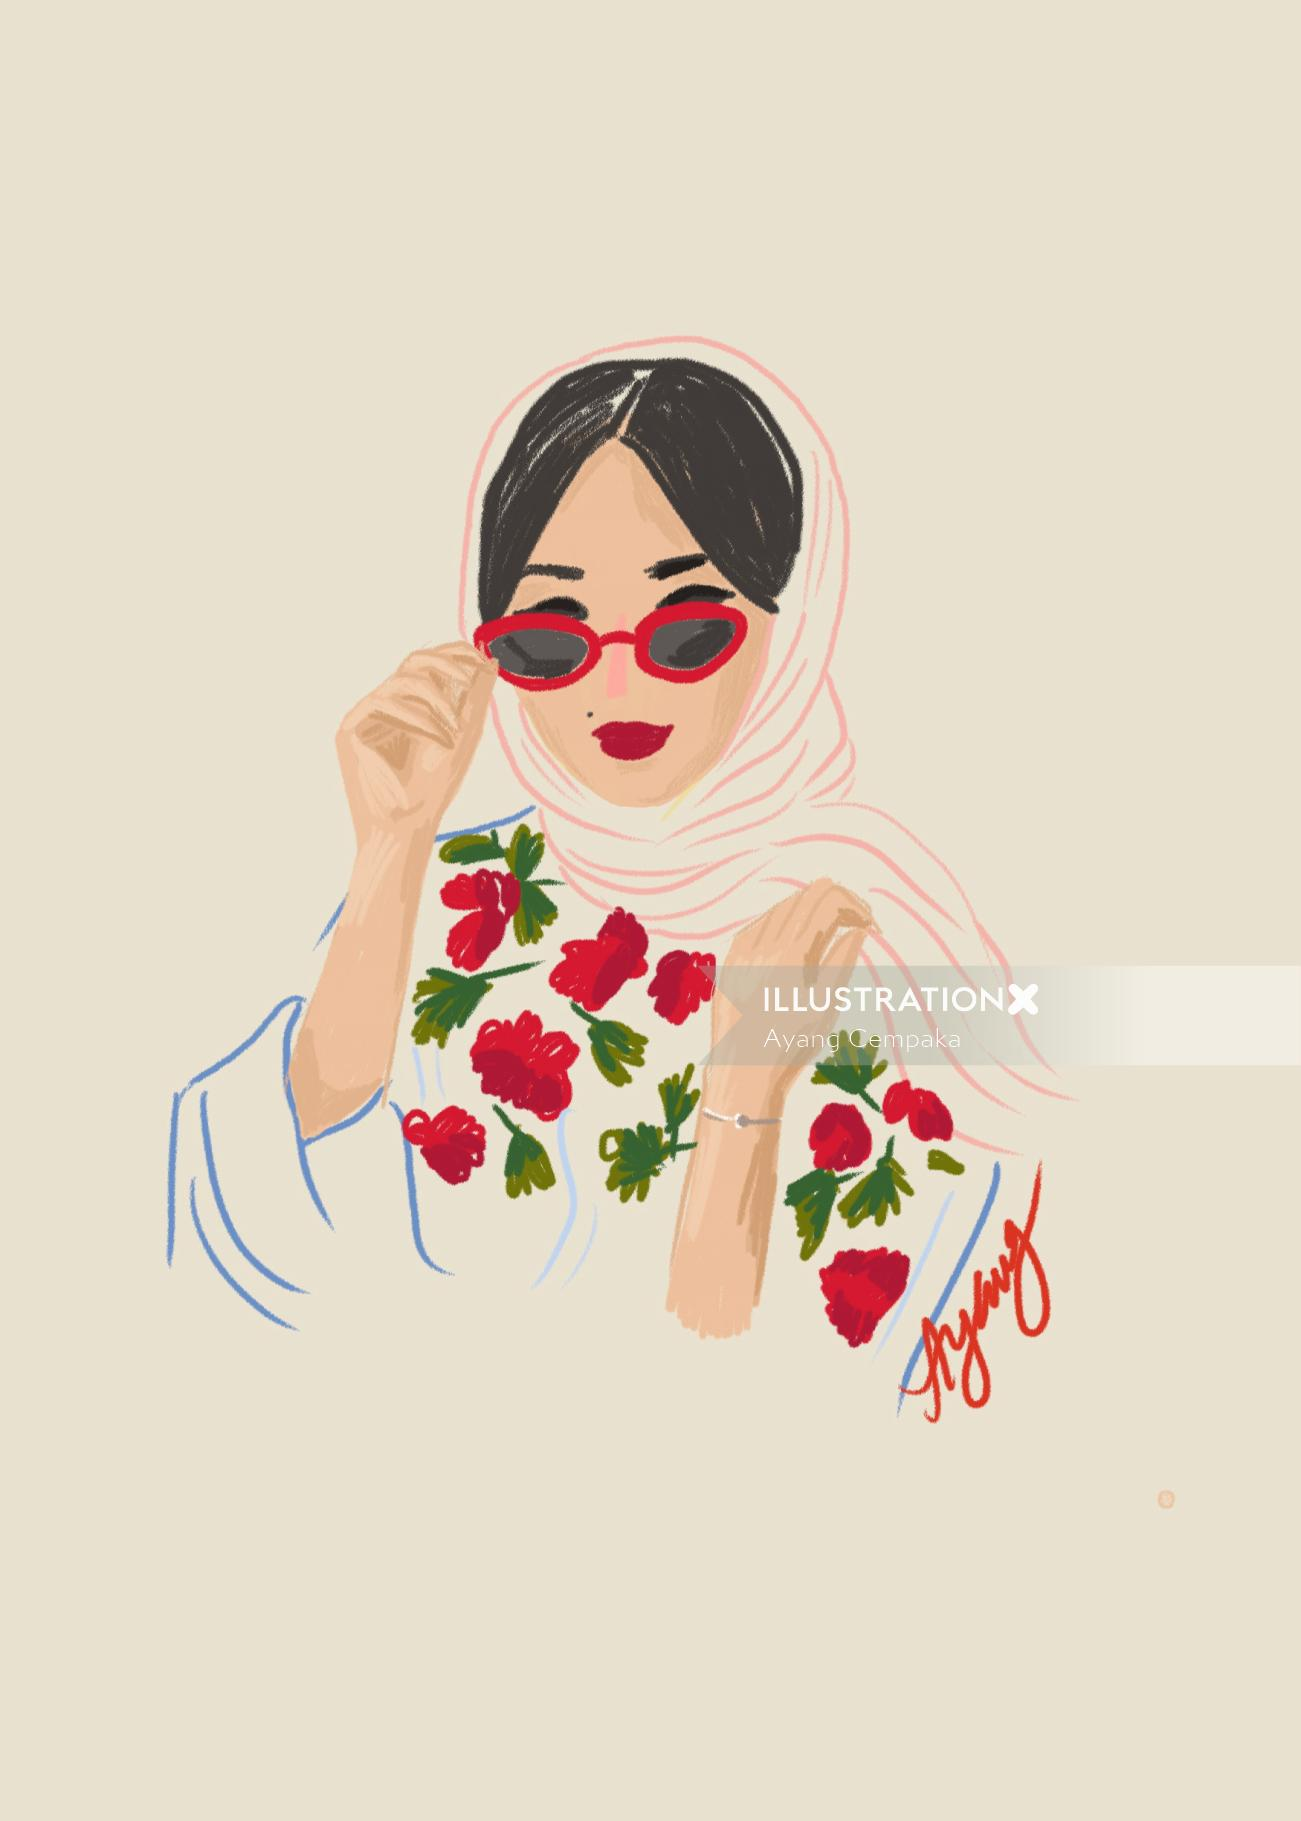 Illustration of woman with floral dress